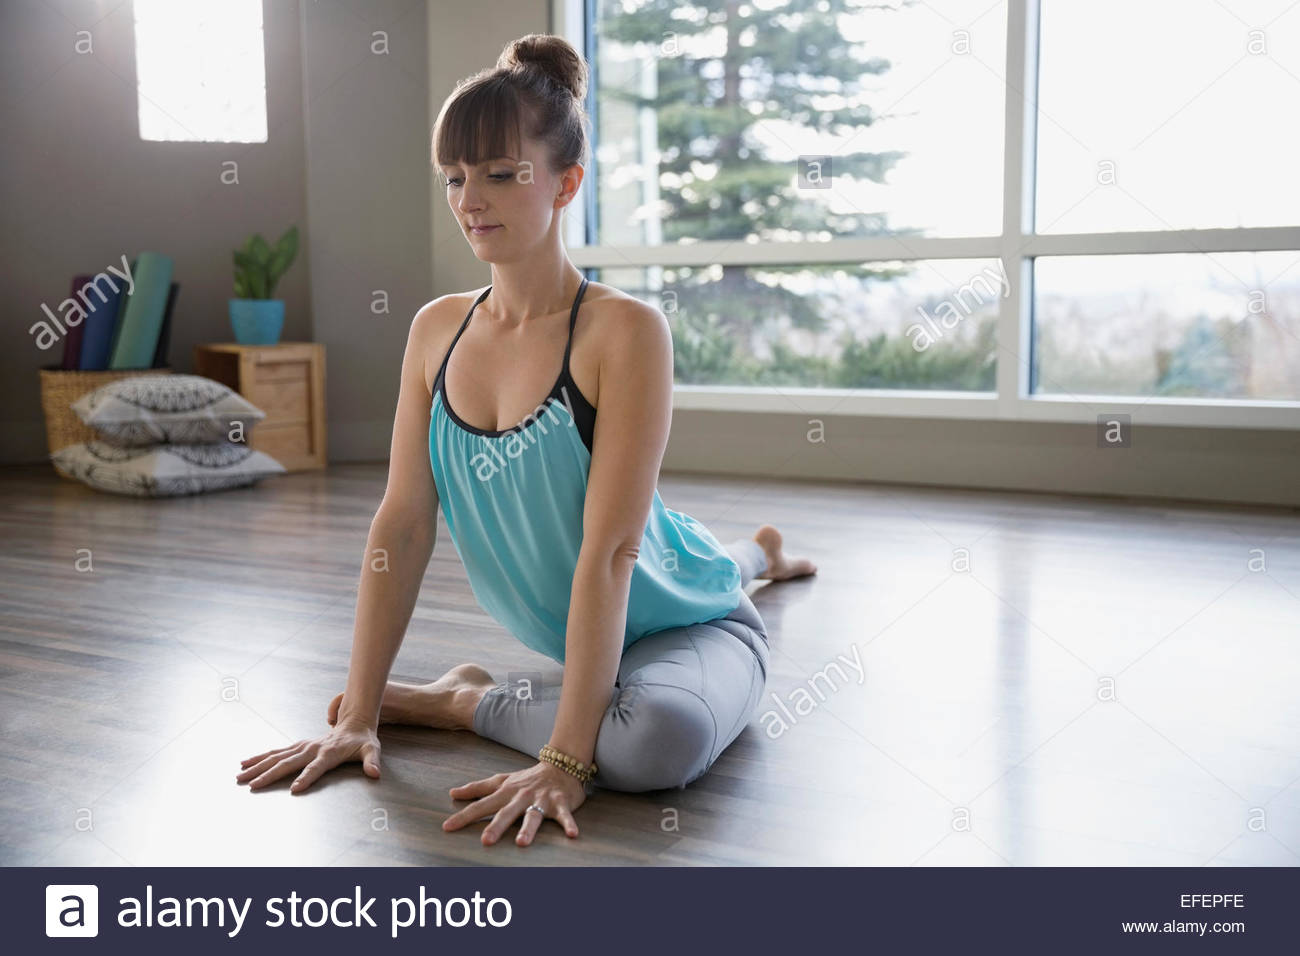 Woman practicing yoga in pigeon pose - Stock Image